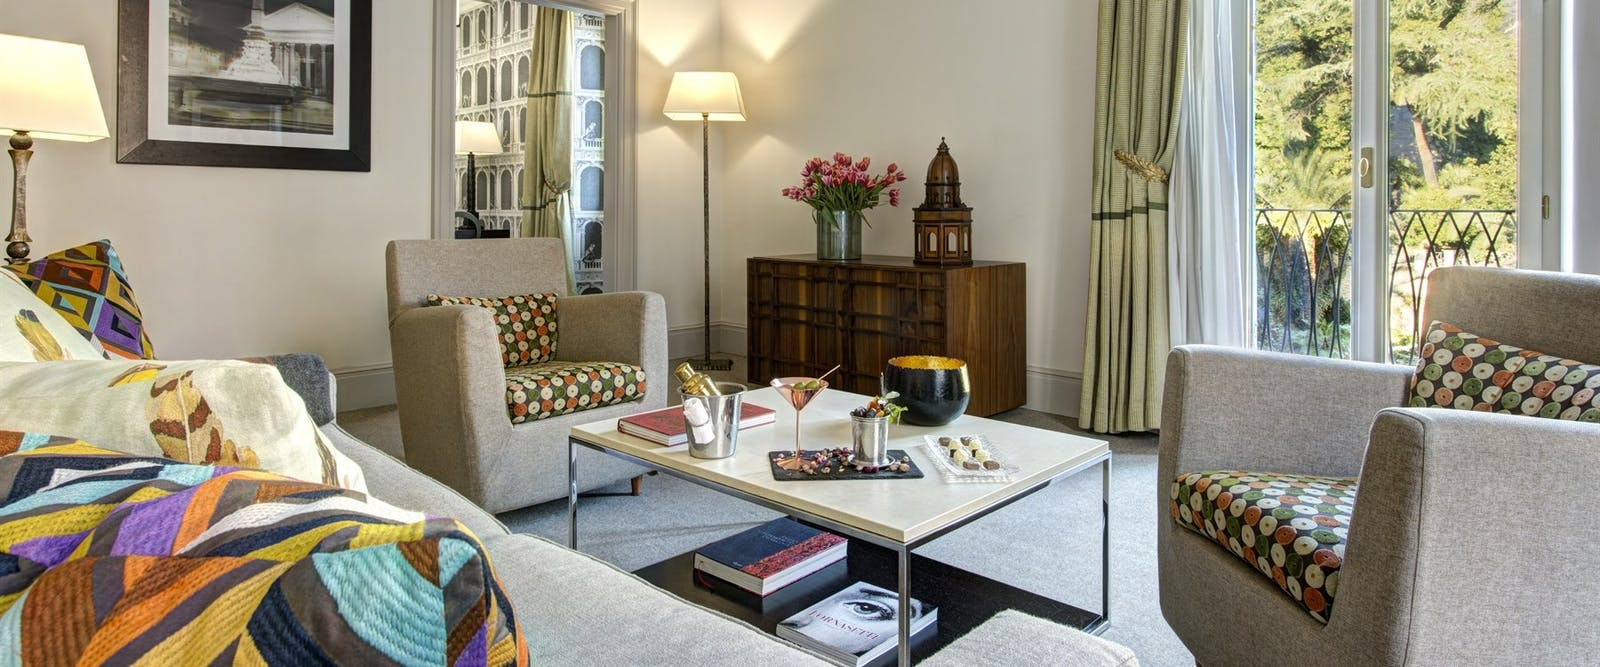 Executive Suite at Hotel De Russie, Rome, Italy